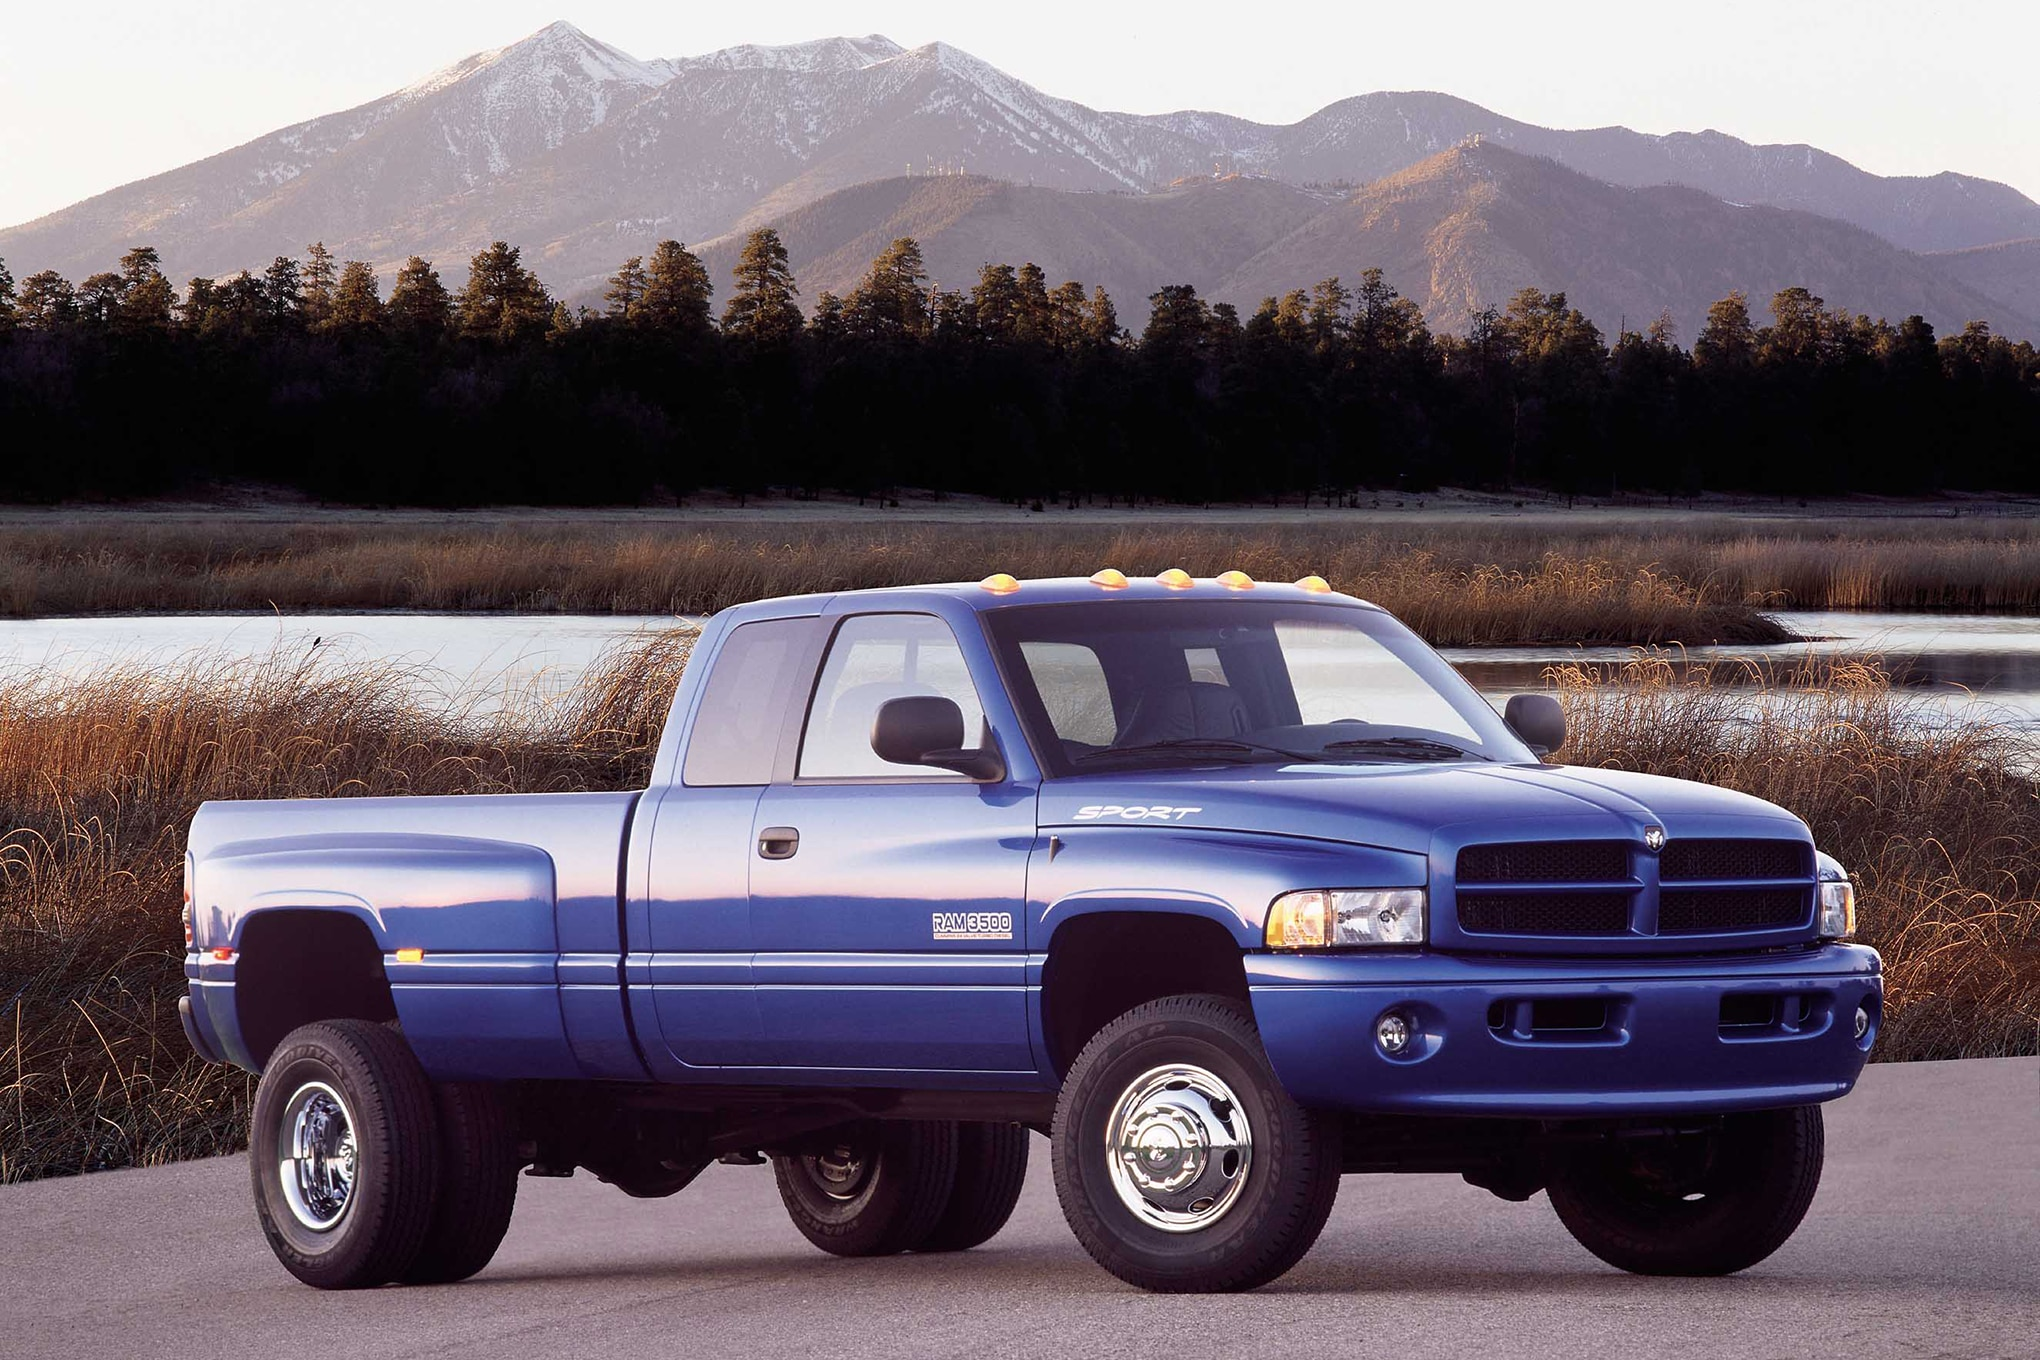 002 2001 dodge ram 3500 dually cummins diesel blue